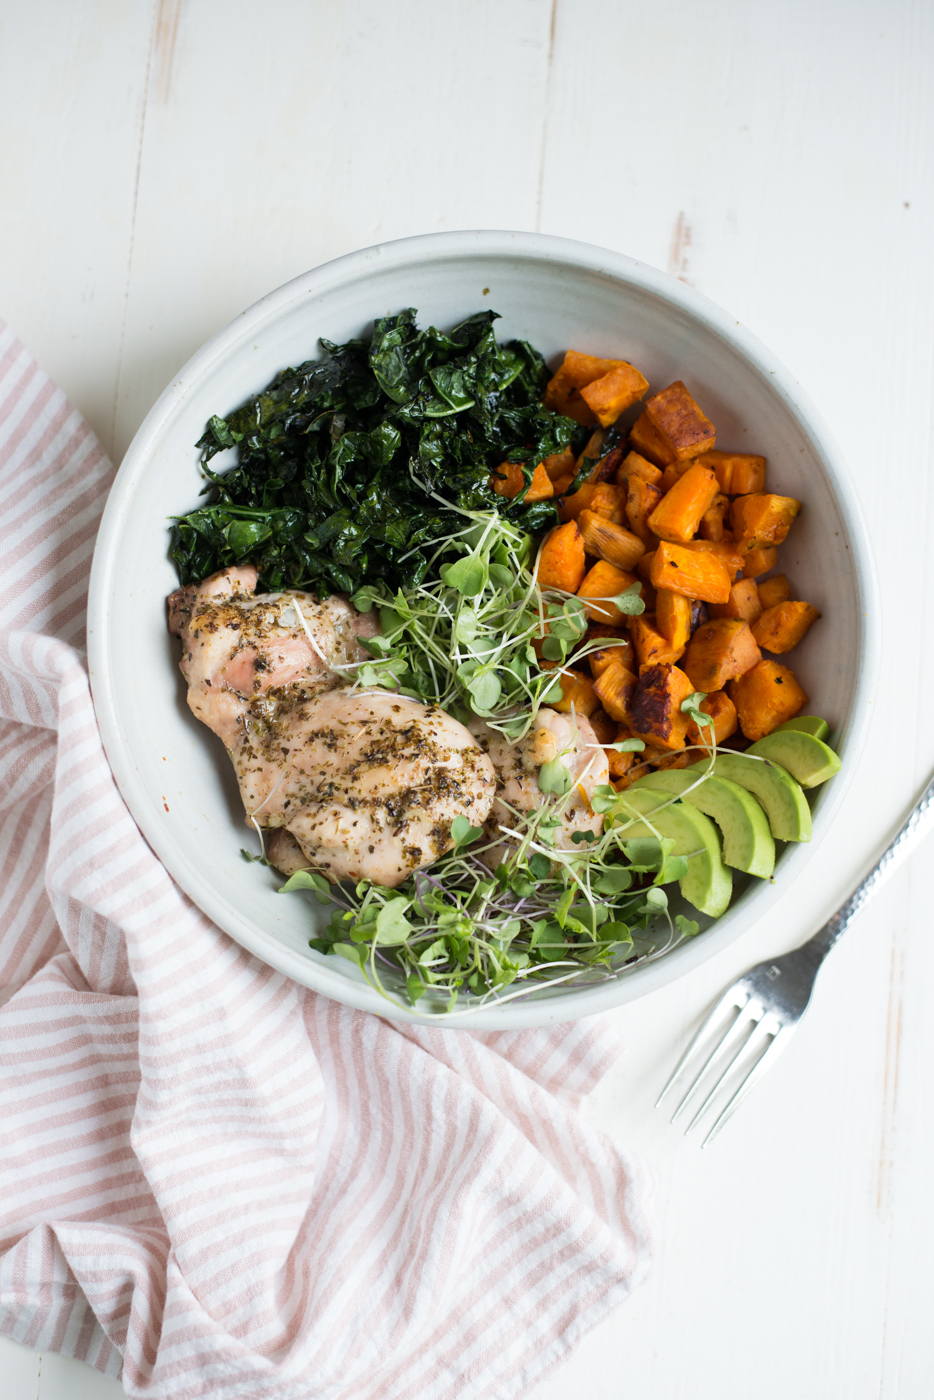 Sheet Pan Chicken, Kale & Sweet Potatoes is a super-simple and healthy 5-ingredient sheet pan recipe perfect for any night of the week! #realfoodwholelife #realfoodwholeliferecipe #sheetpan #onesheet #recipe #whole30 #septemberwhole30 #glutenfree #dairyfree #paleo #paleorecipe #whole30recipe #cleaneating #chicken #kale #sweetpotatoes